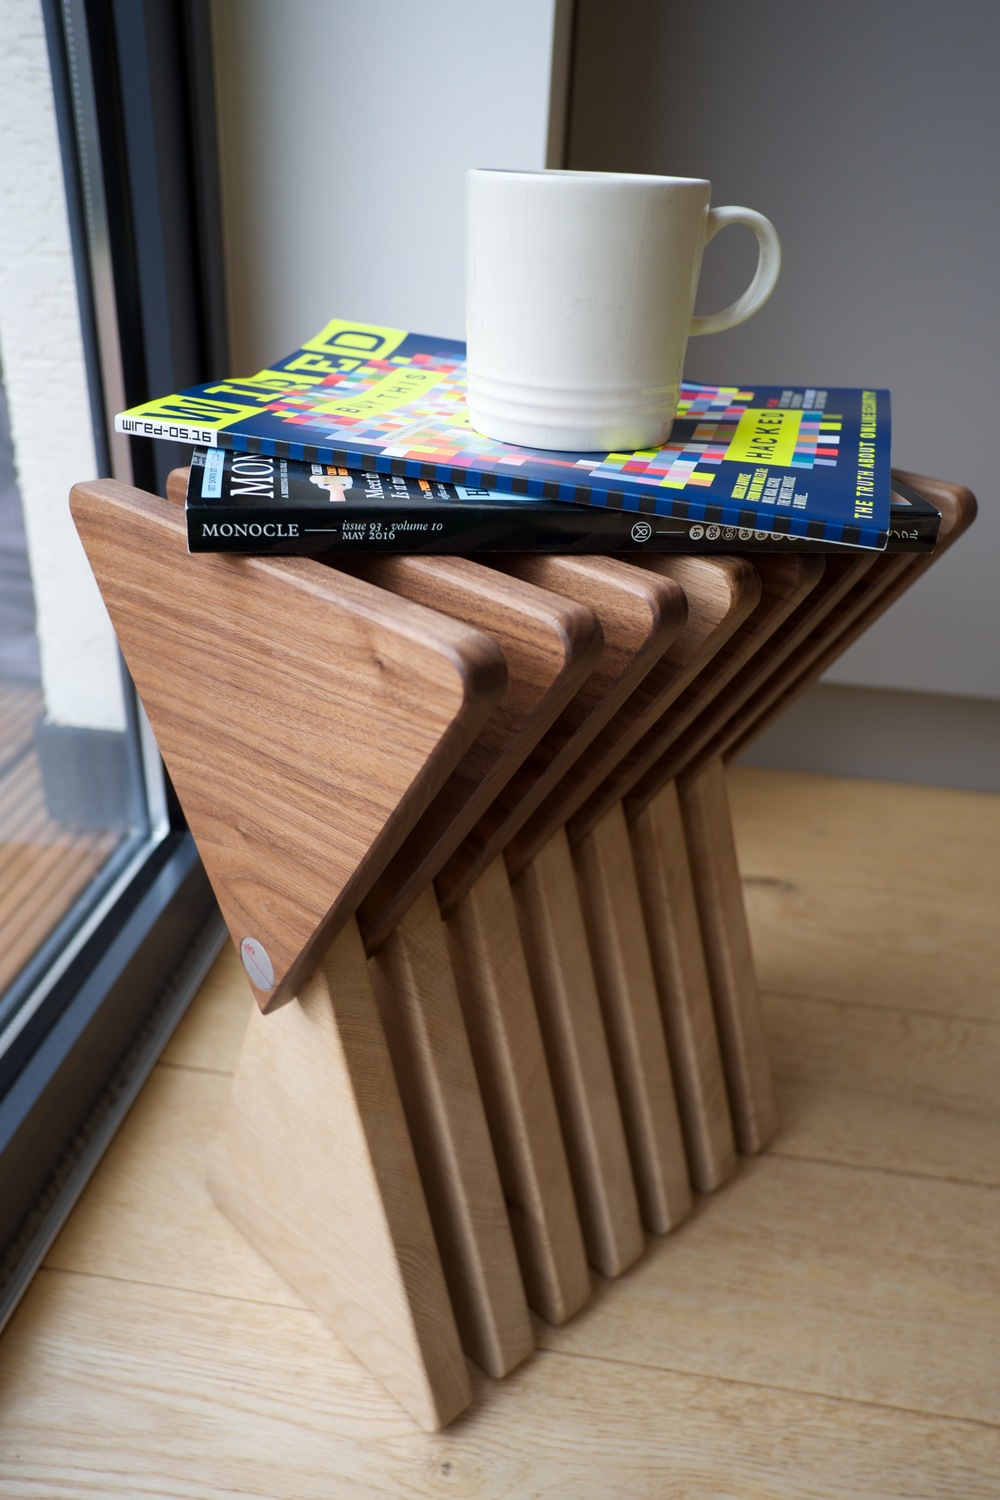 The Vinci Stool in side table mode